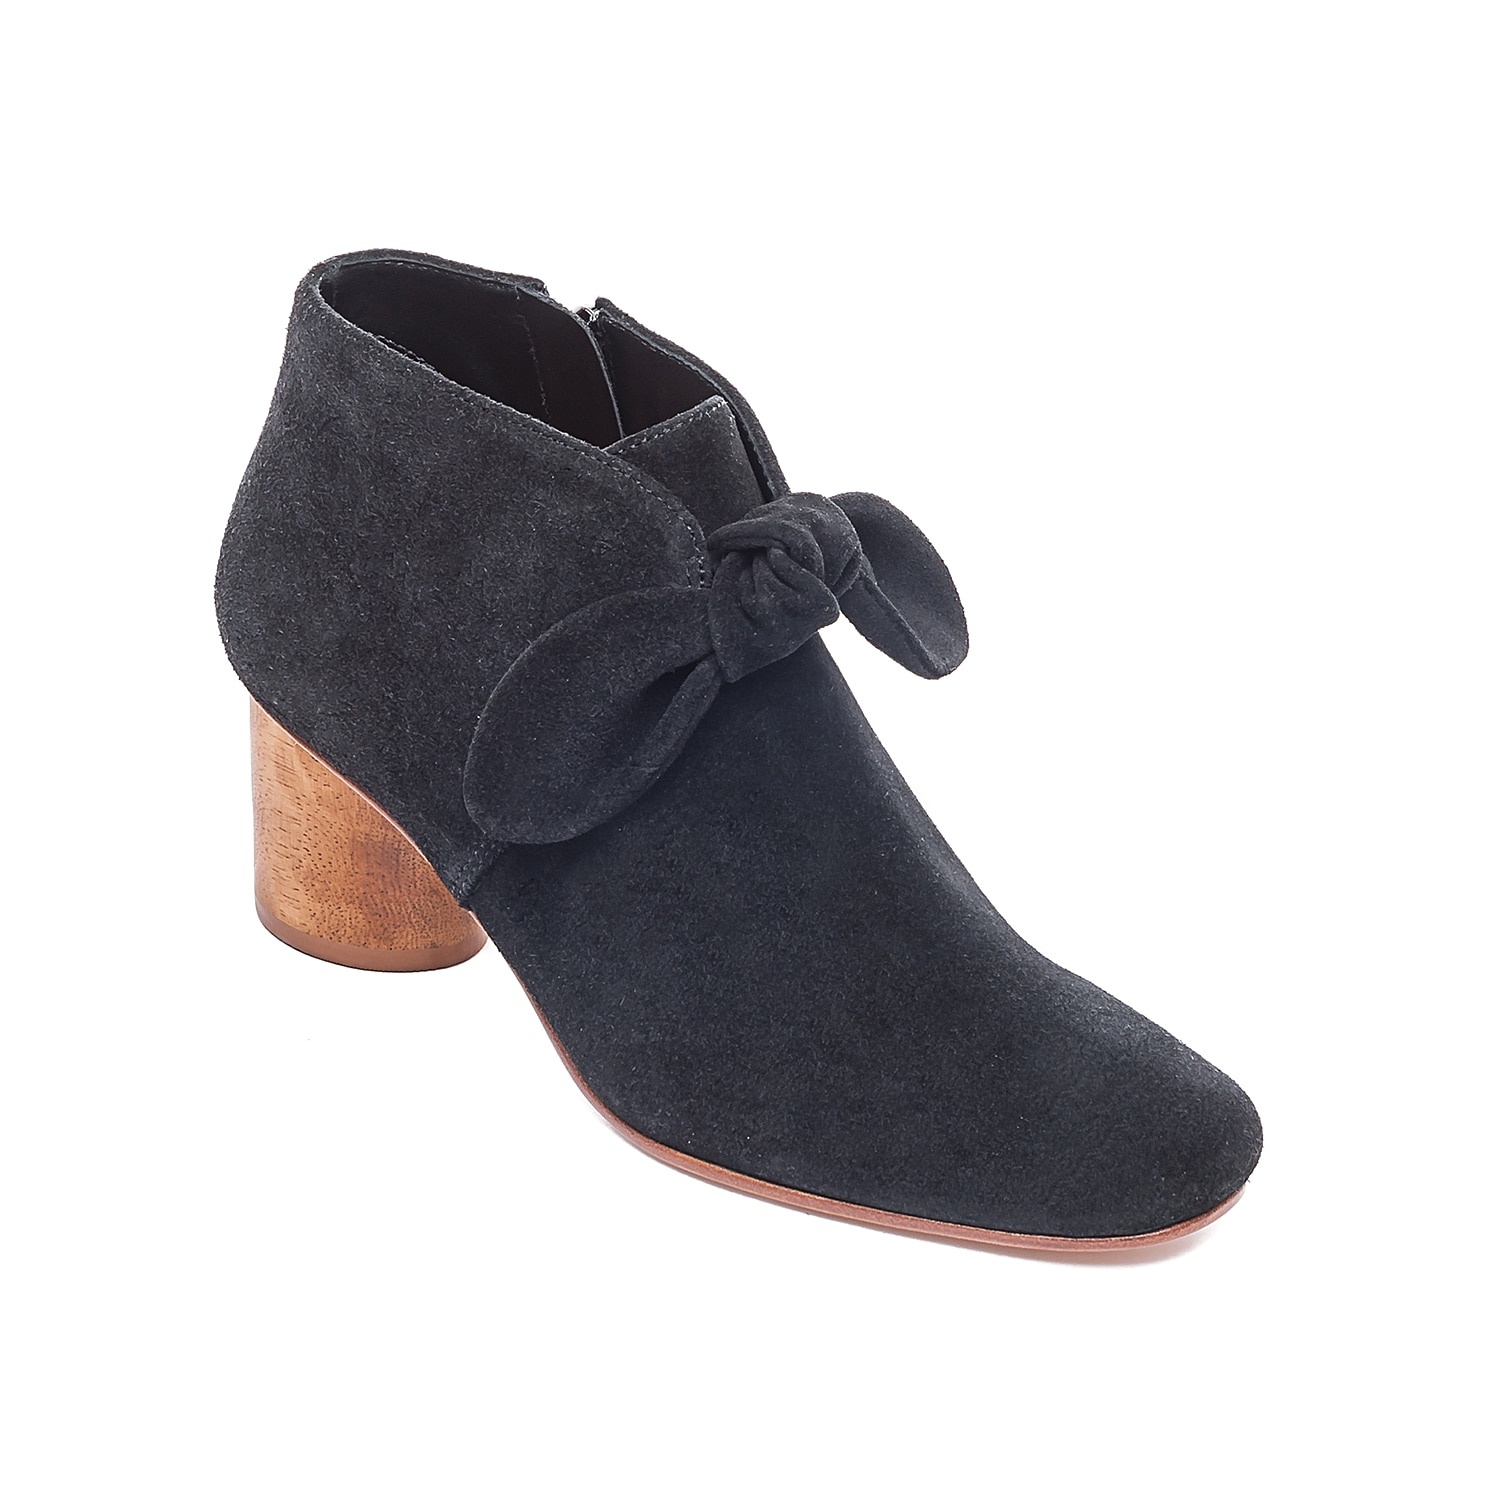 Chic and comfy, the Ilanna bootie by Bernardo gives just the right touch to your everyday style. Detailed with a knotted bow accent, this suede bootie is heightened by a padded leather sock and cylindrical block heel with a wood-like look.Click here for Boot Measuring Guide.